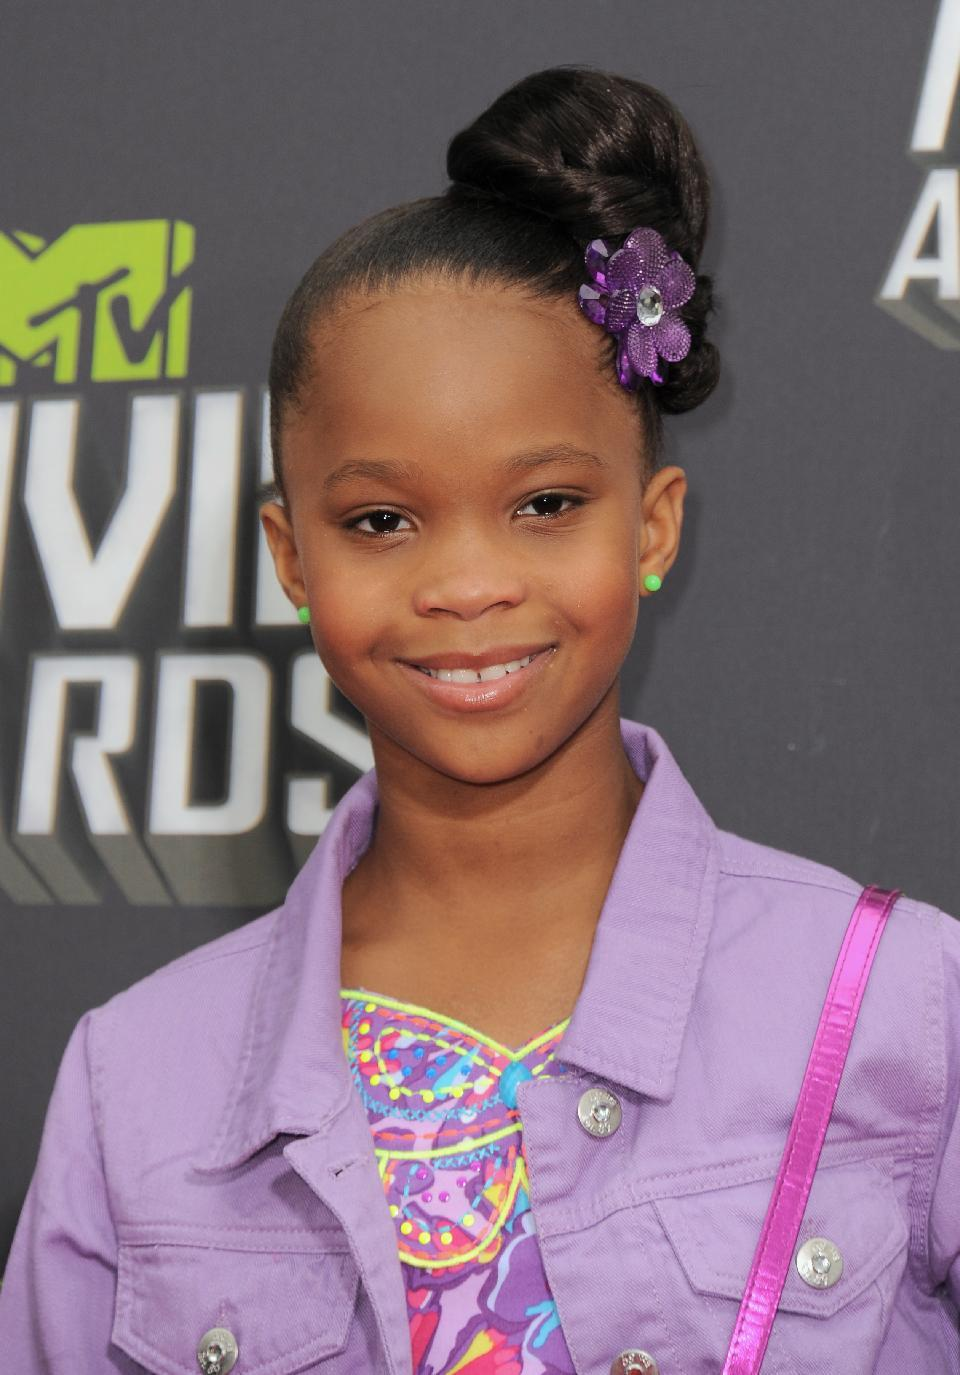 Quvenzhane Wallis arrives at the MTV Movie Awards in Sony Pictures Studio Lot in Culver City, Calif., on Sunday April 14, 2013. (Photo by Jordan Strauss/Invision/AP)